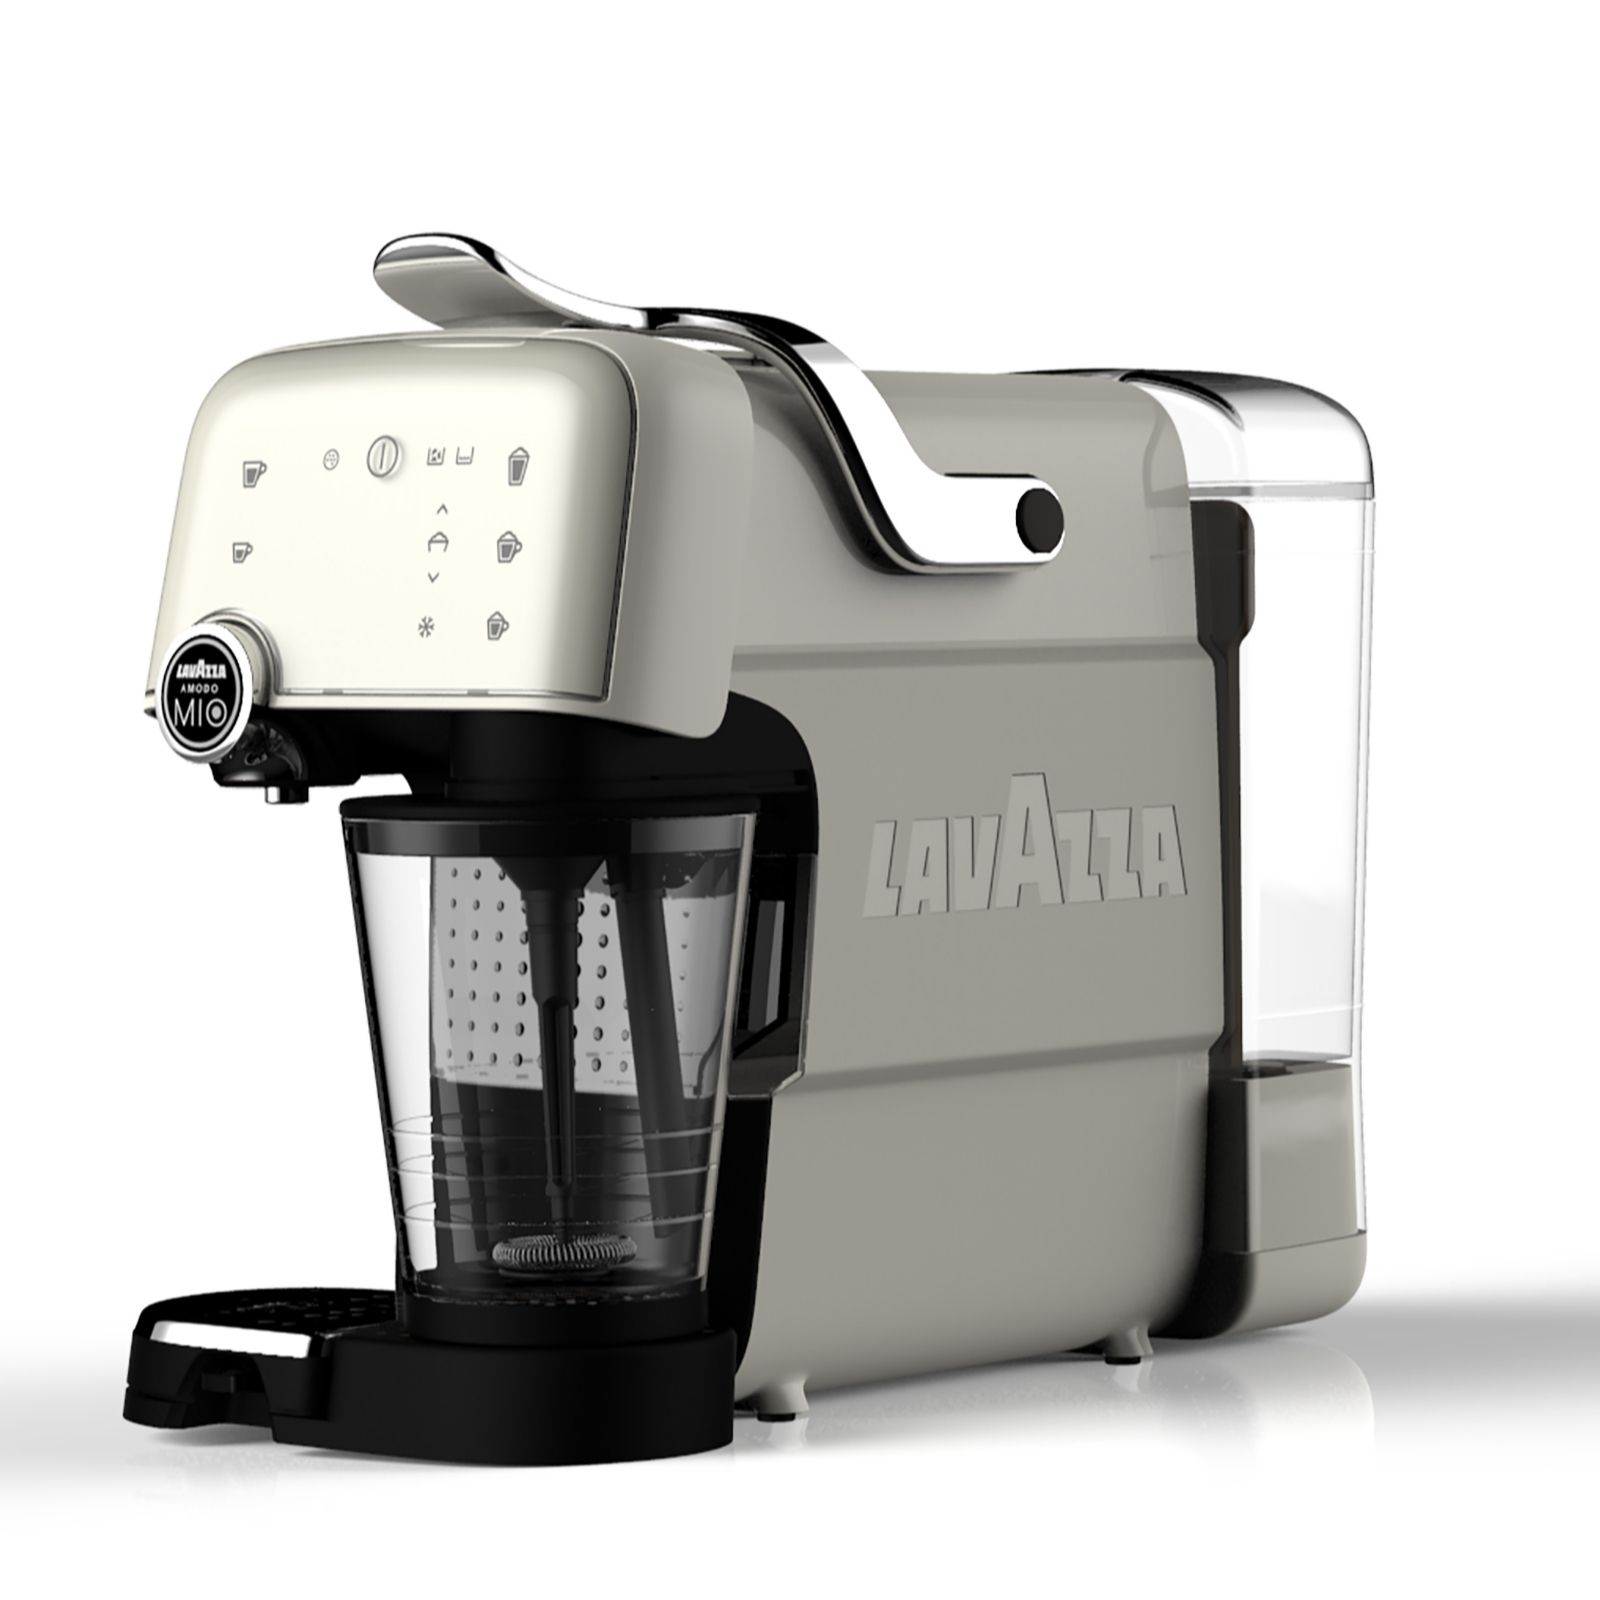 Lavazza Fantasia Coffee Machine With Built In Milk Frother Qvc Uk